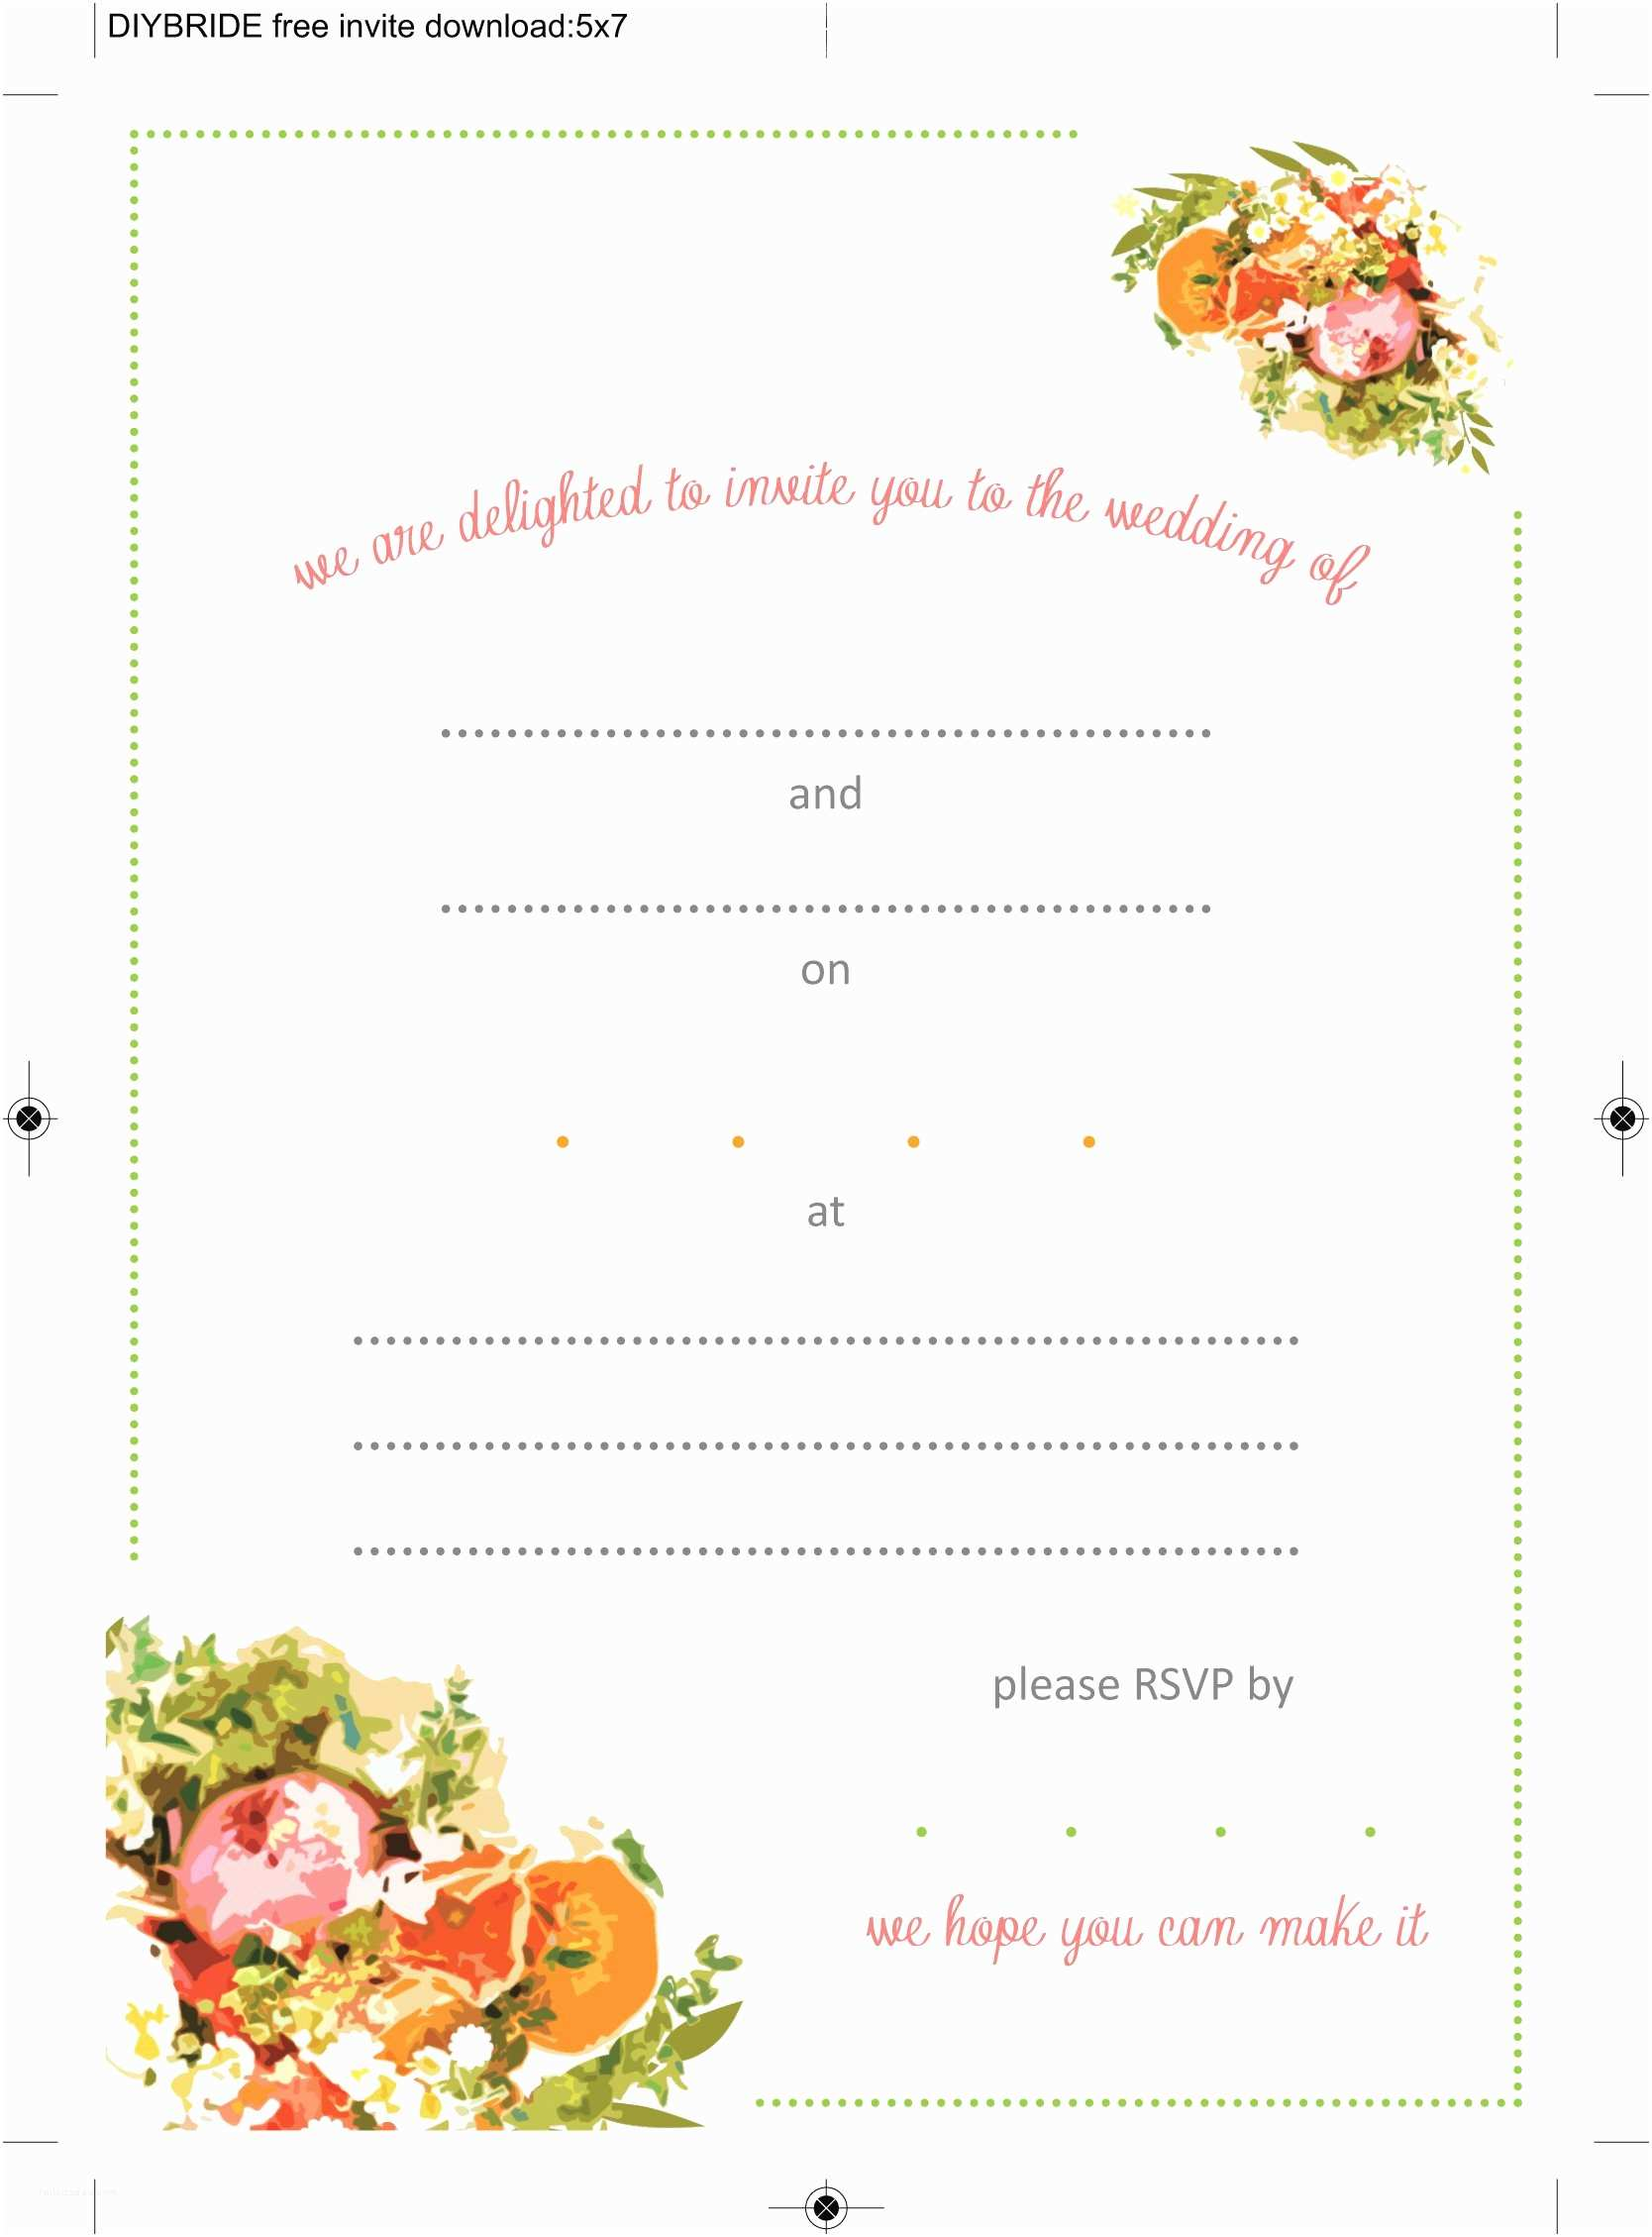 How To Print Out Wedding Invitations Free Printable Wedding Invitation Templates